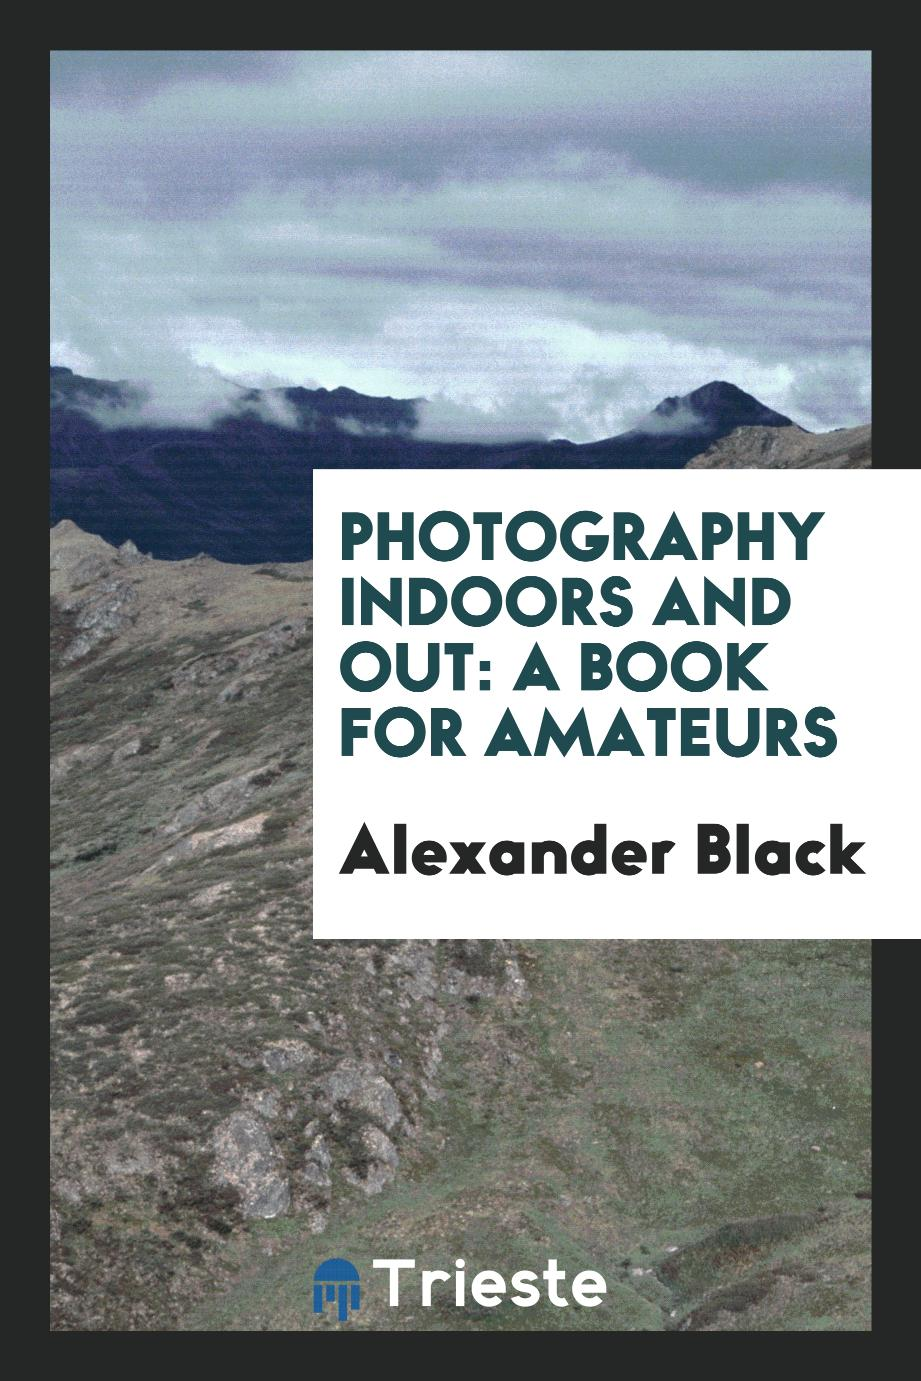 Photography Indoors and Out: A Book for Amateurs